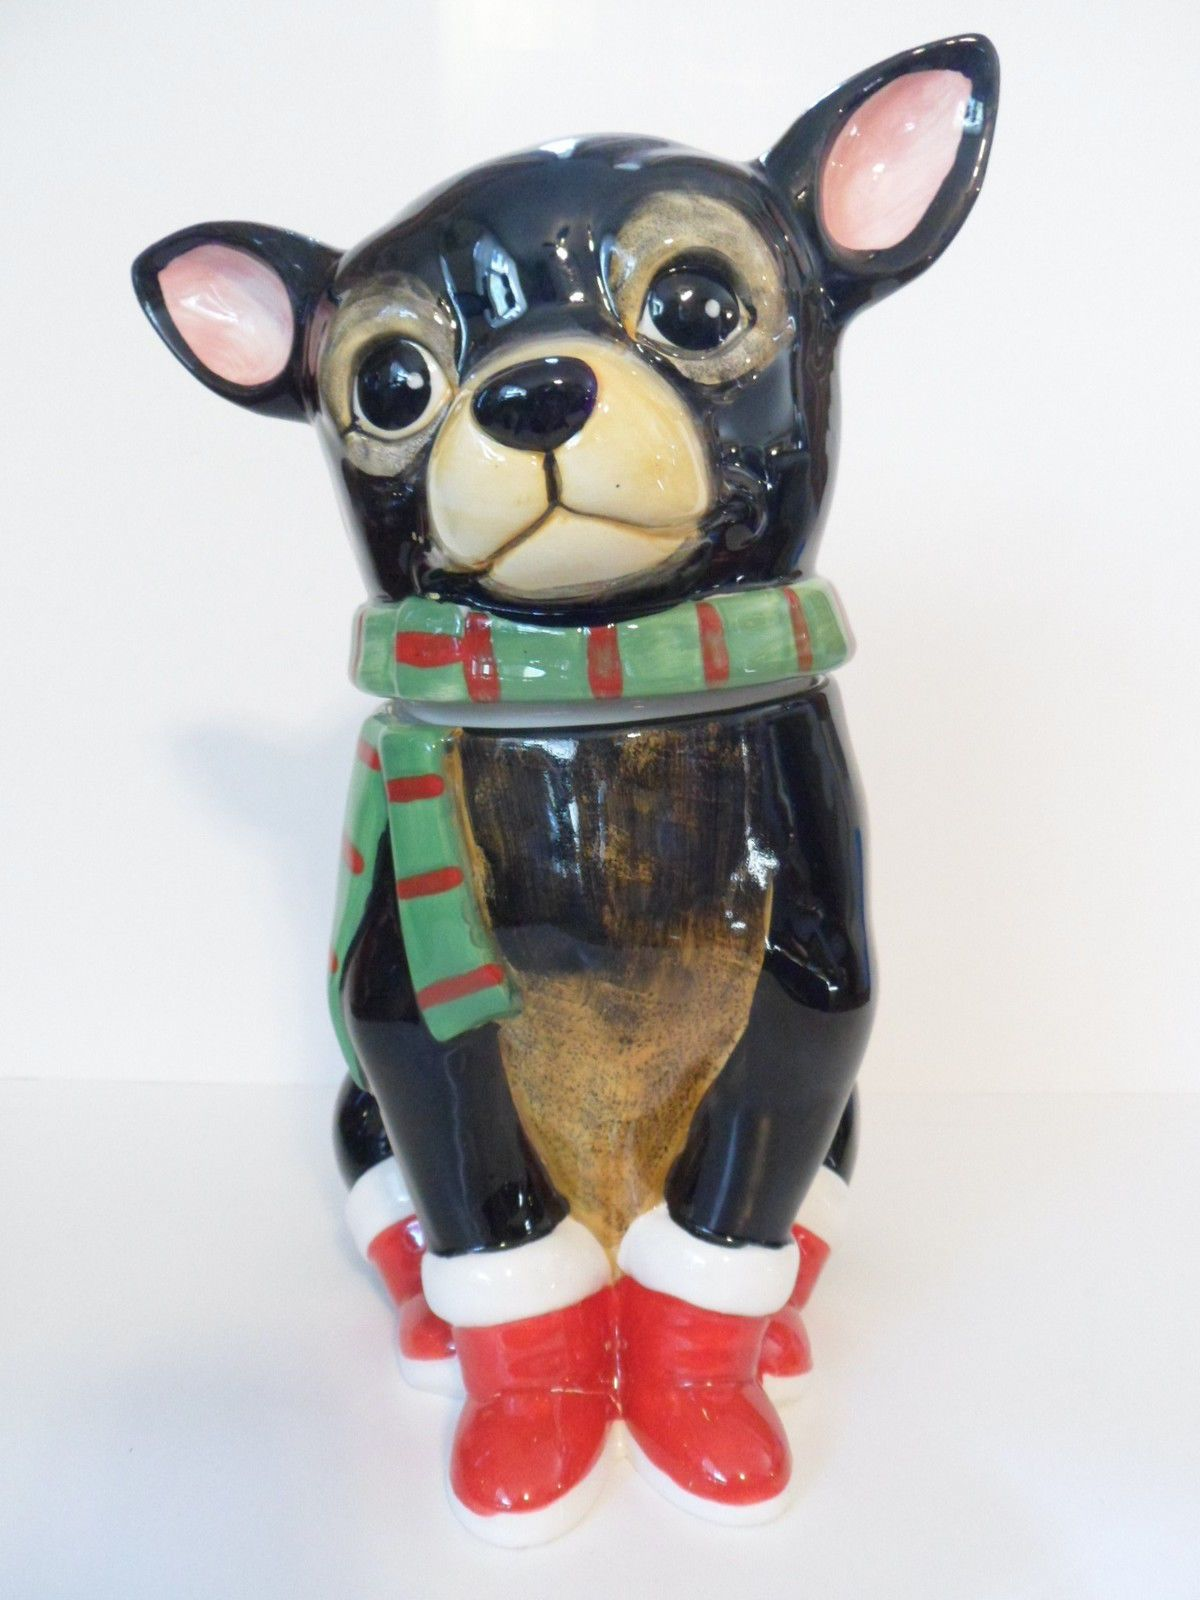 Chihuahua Cookie Jar Pleasing Starbucks San Francisco 2015 Ceramic Holiday Christmas Ornament Design Decoration